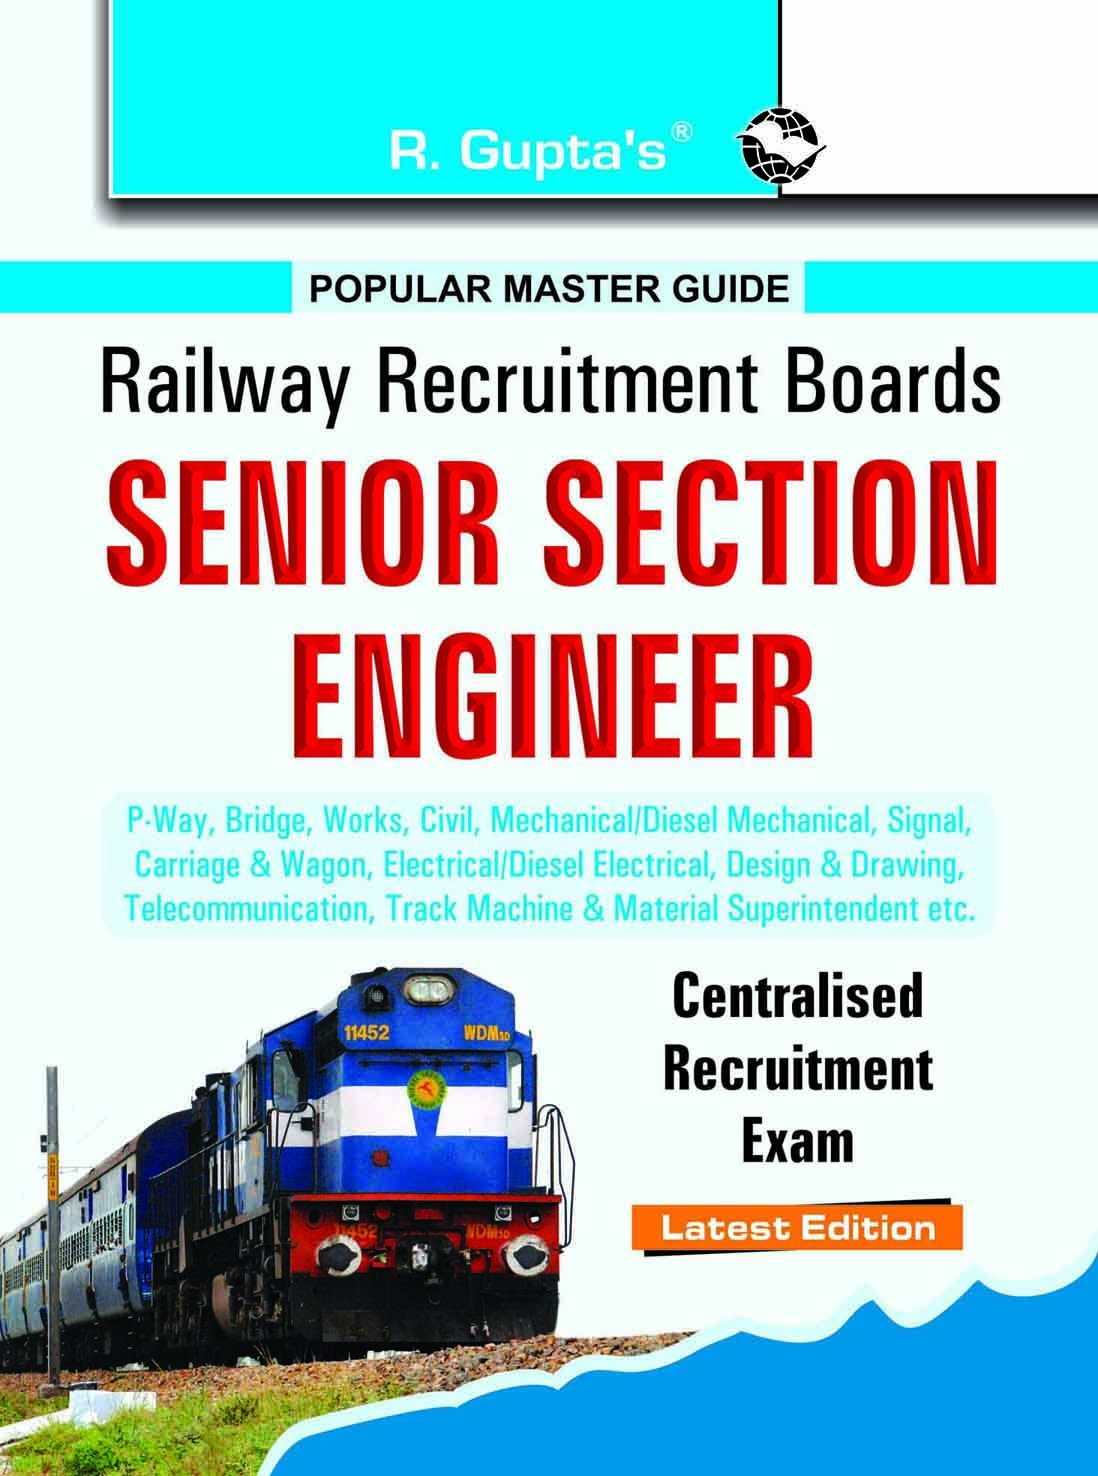 Rrb - Senior Section Engineer (P.Way, Bridge, Works, Civil, Mechanical Etc.): Centralised Recruitment Exam Guide PDF